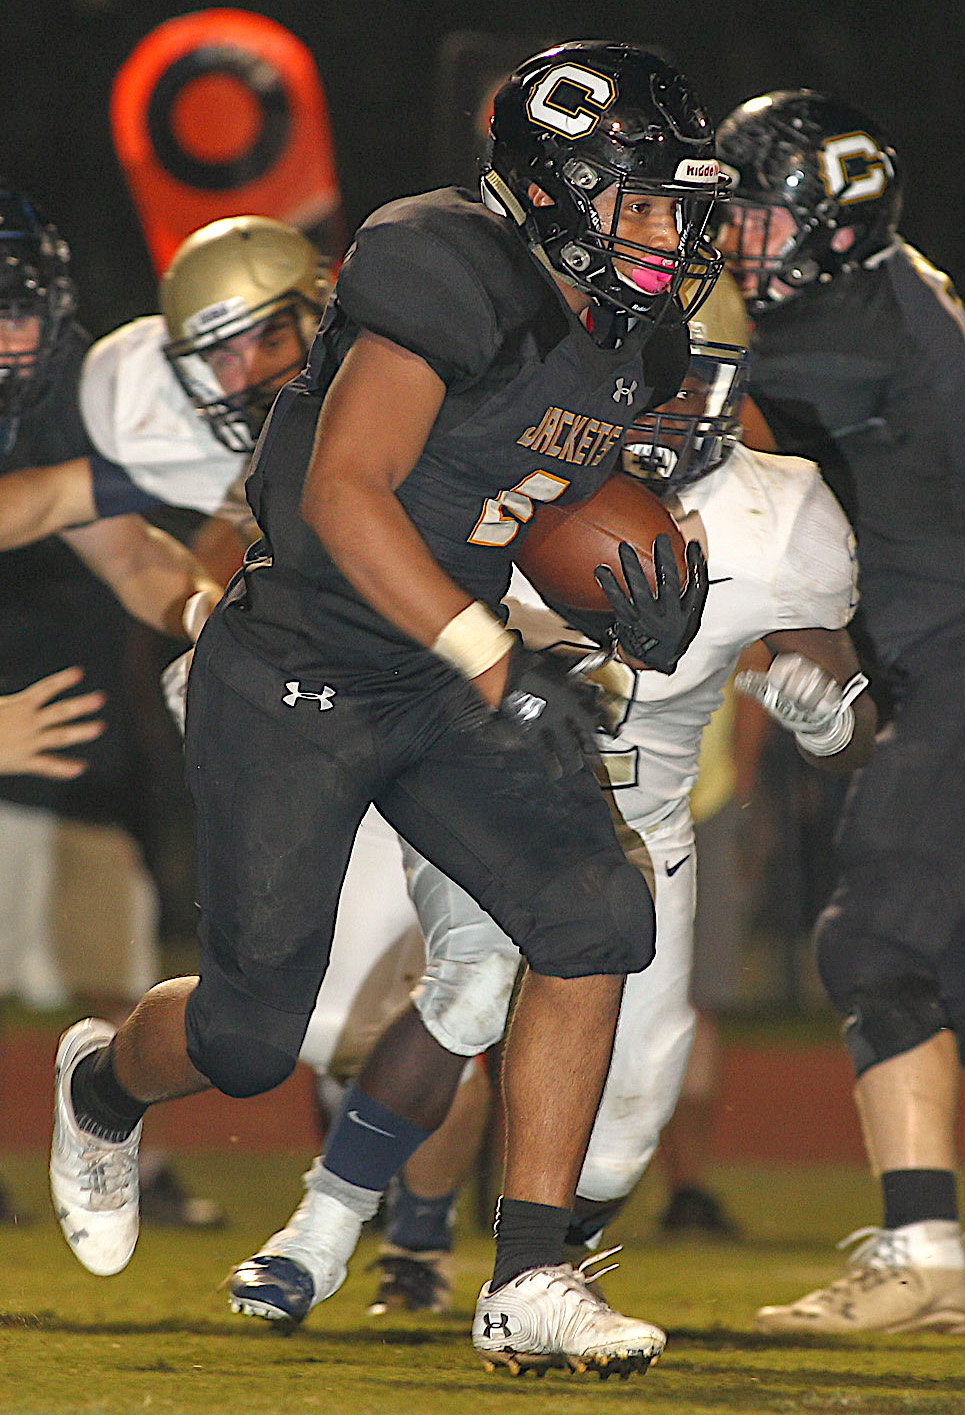 Corner's Nicholas Brashear (2) runs against Dora on Friday night. Brashear rushed for 117 yards and three touchdowns on 17 carries in  the Yellow Jackets' 30-7 win over Dora.